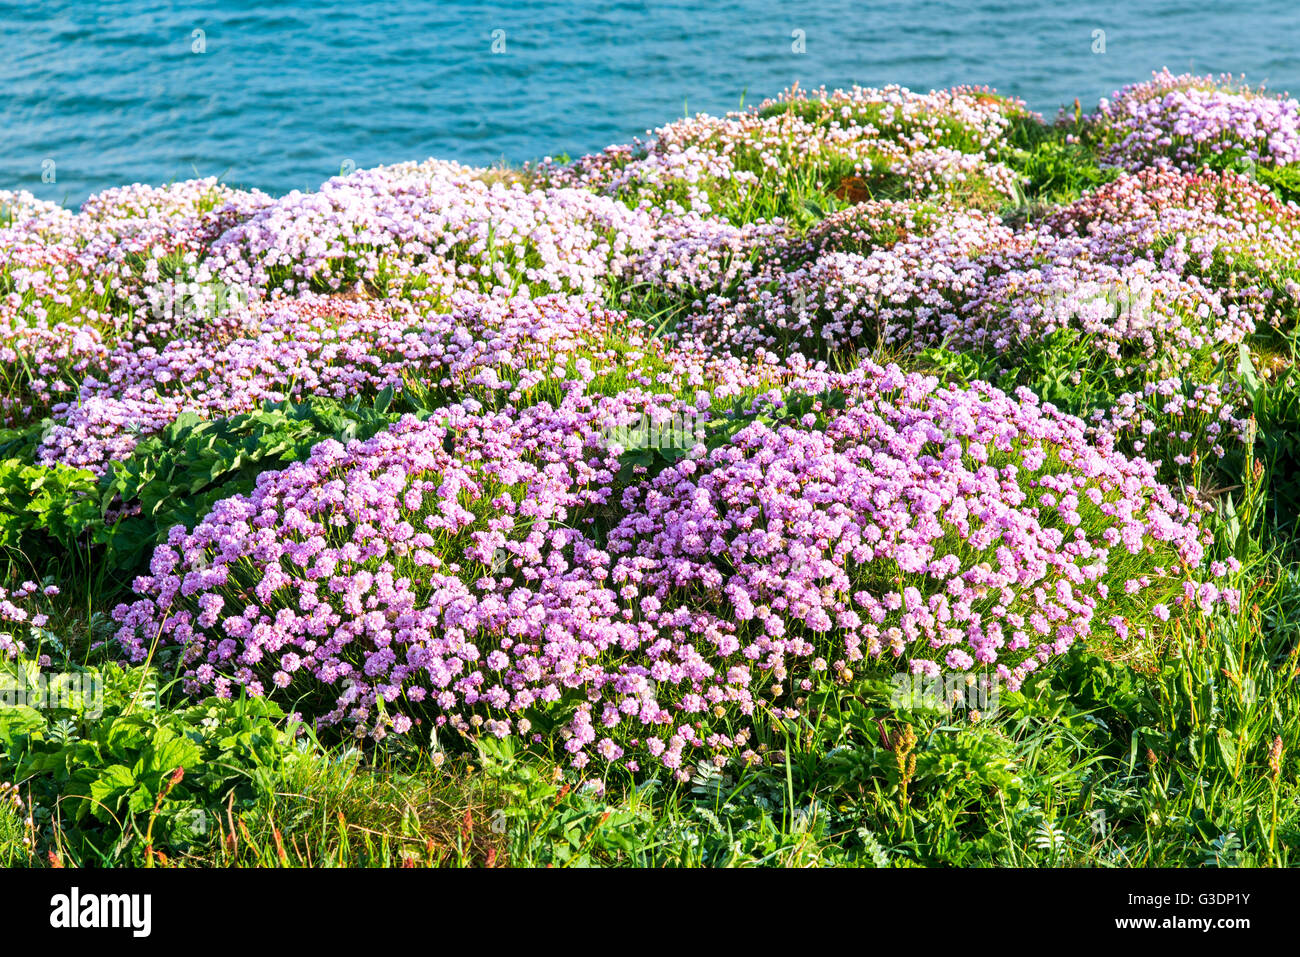 Sea pinks cornwall stock photos sea pinks cornwall stock images sea pinks or thrift armeria maritima on the clifftop at newquay cornwall mightylinksfo